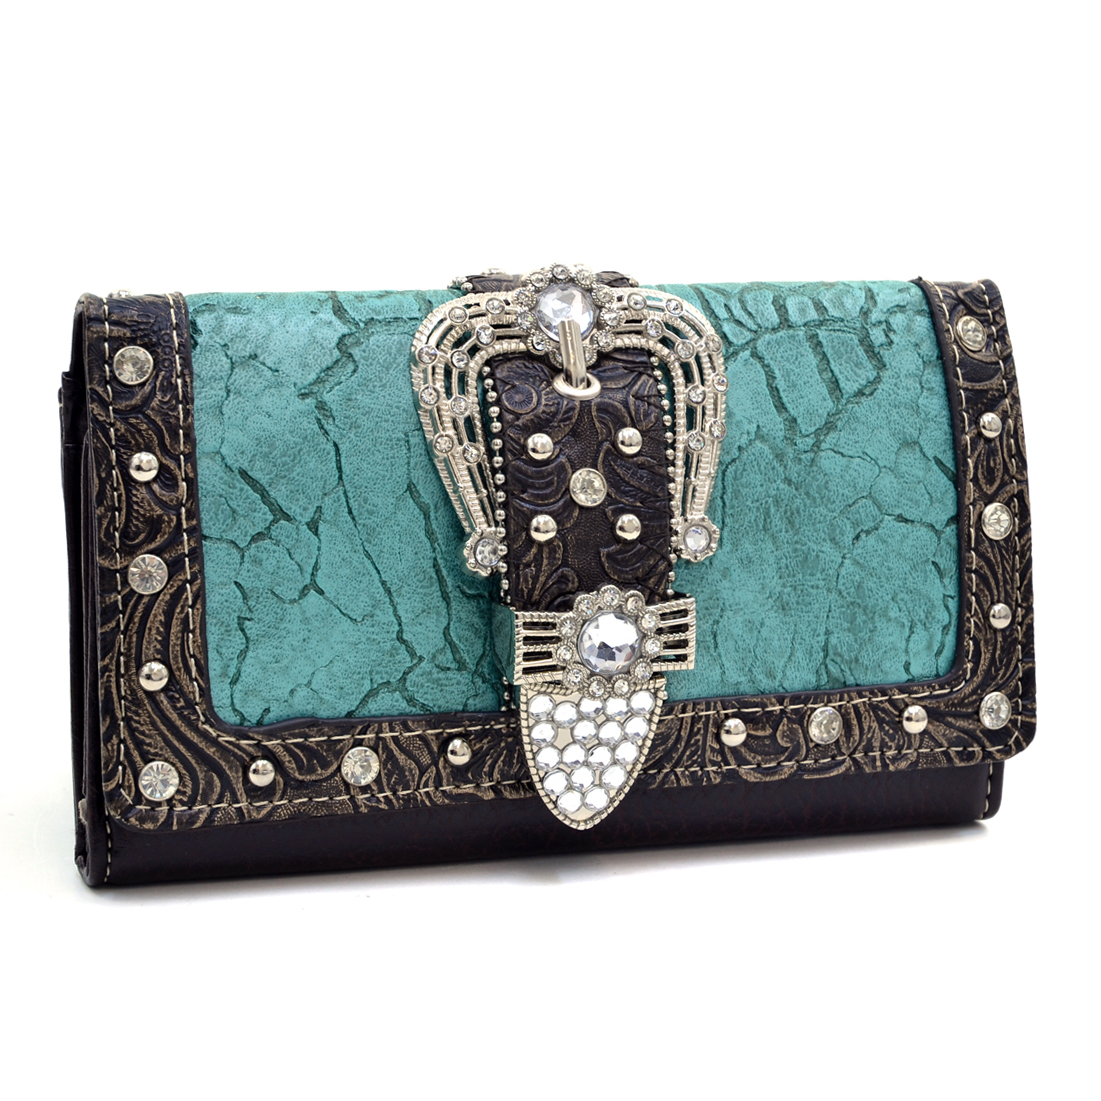 Rhinestone Buckle Western Wallet With Floral Texture Trim